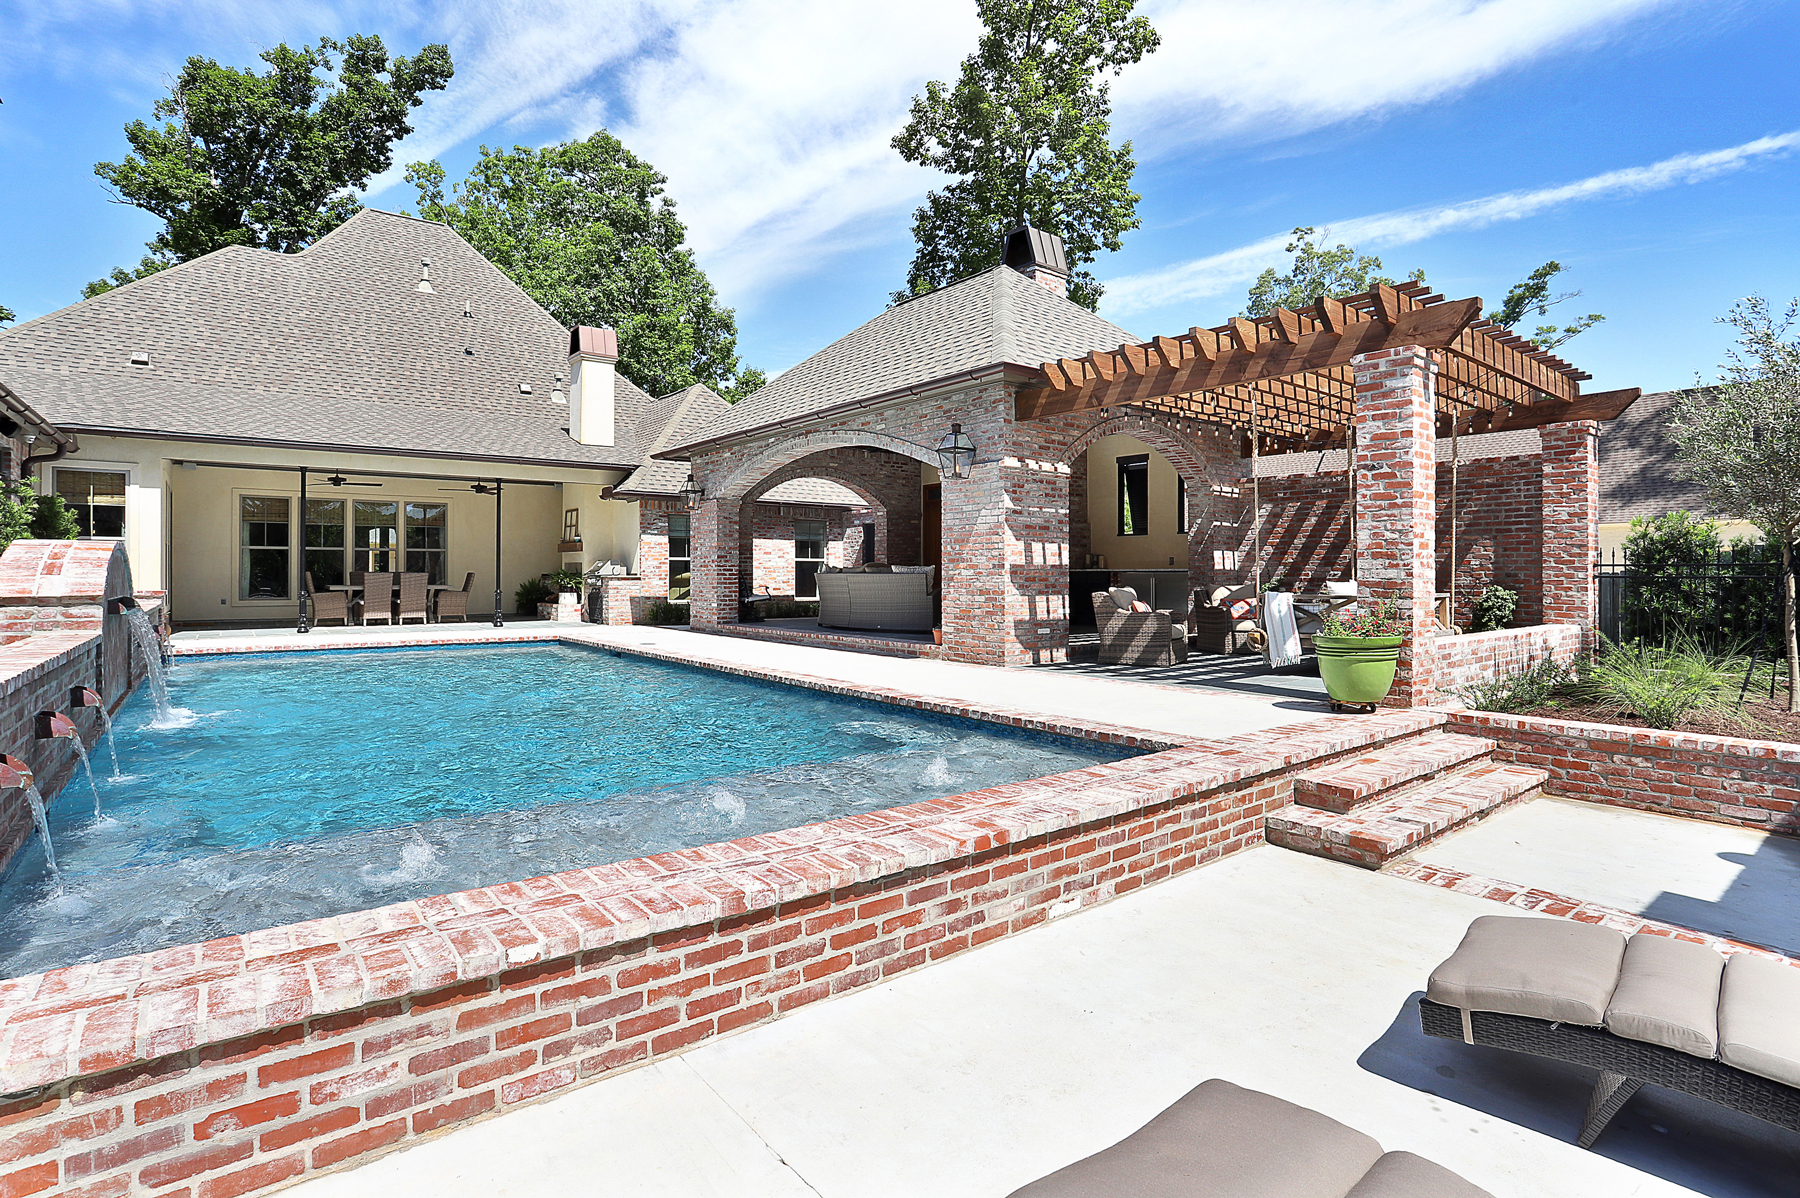 Pool Builder in Central Baton Rouge